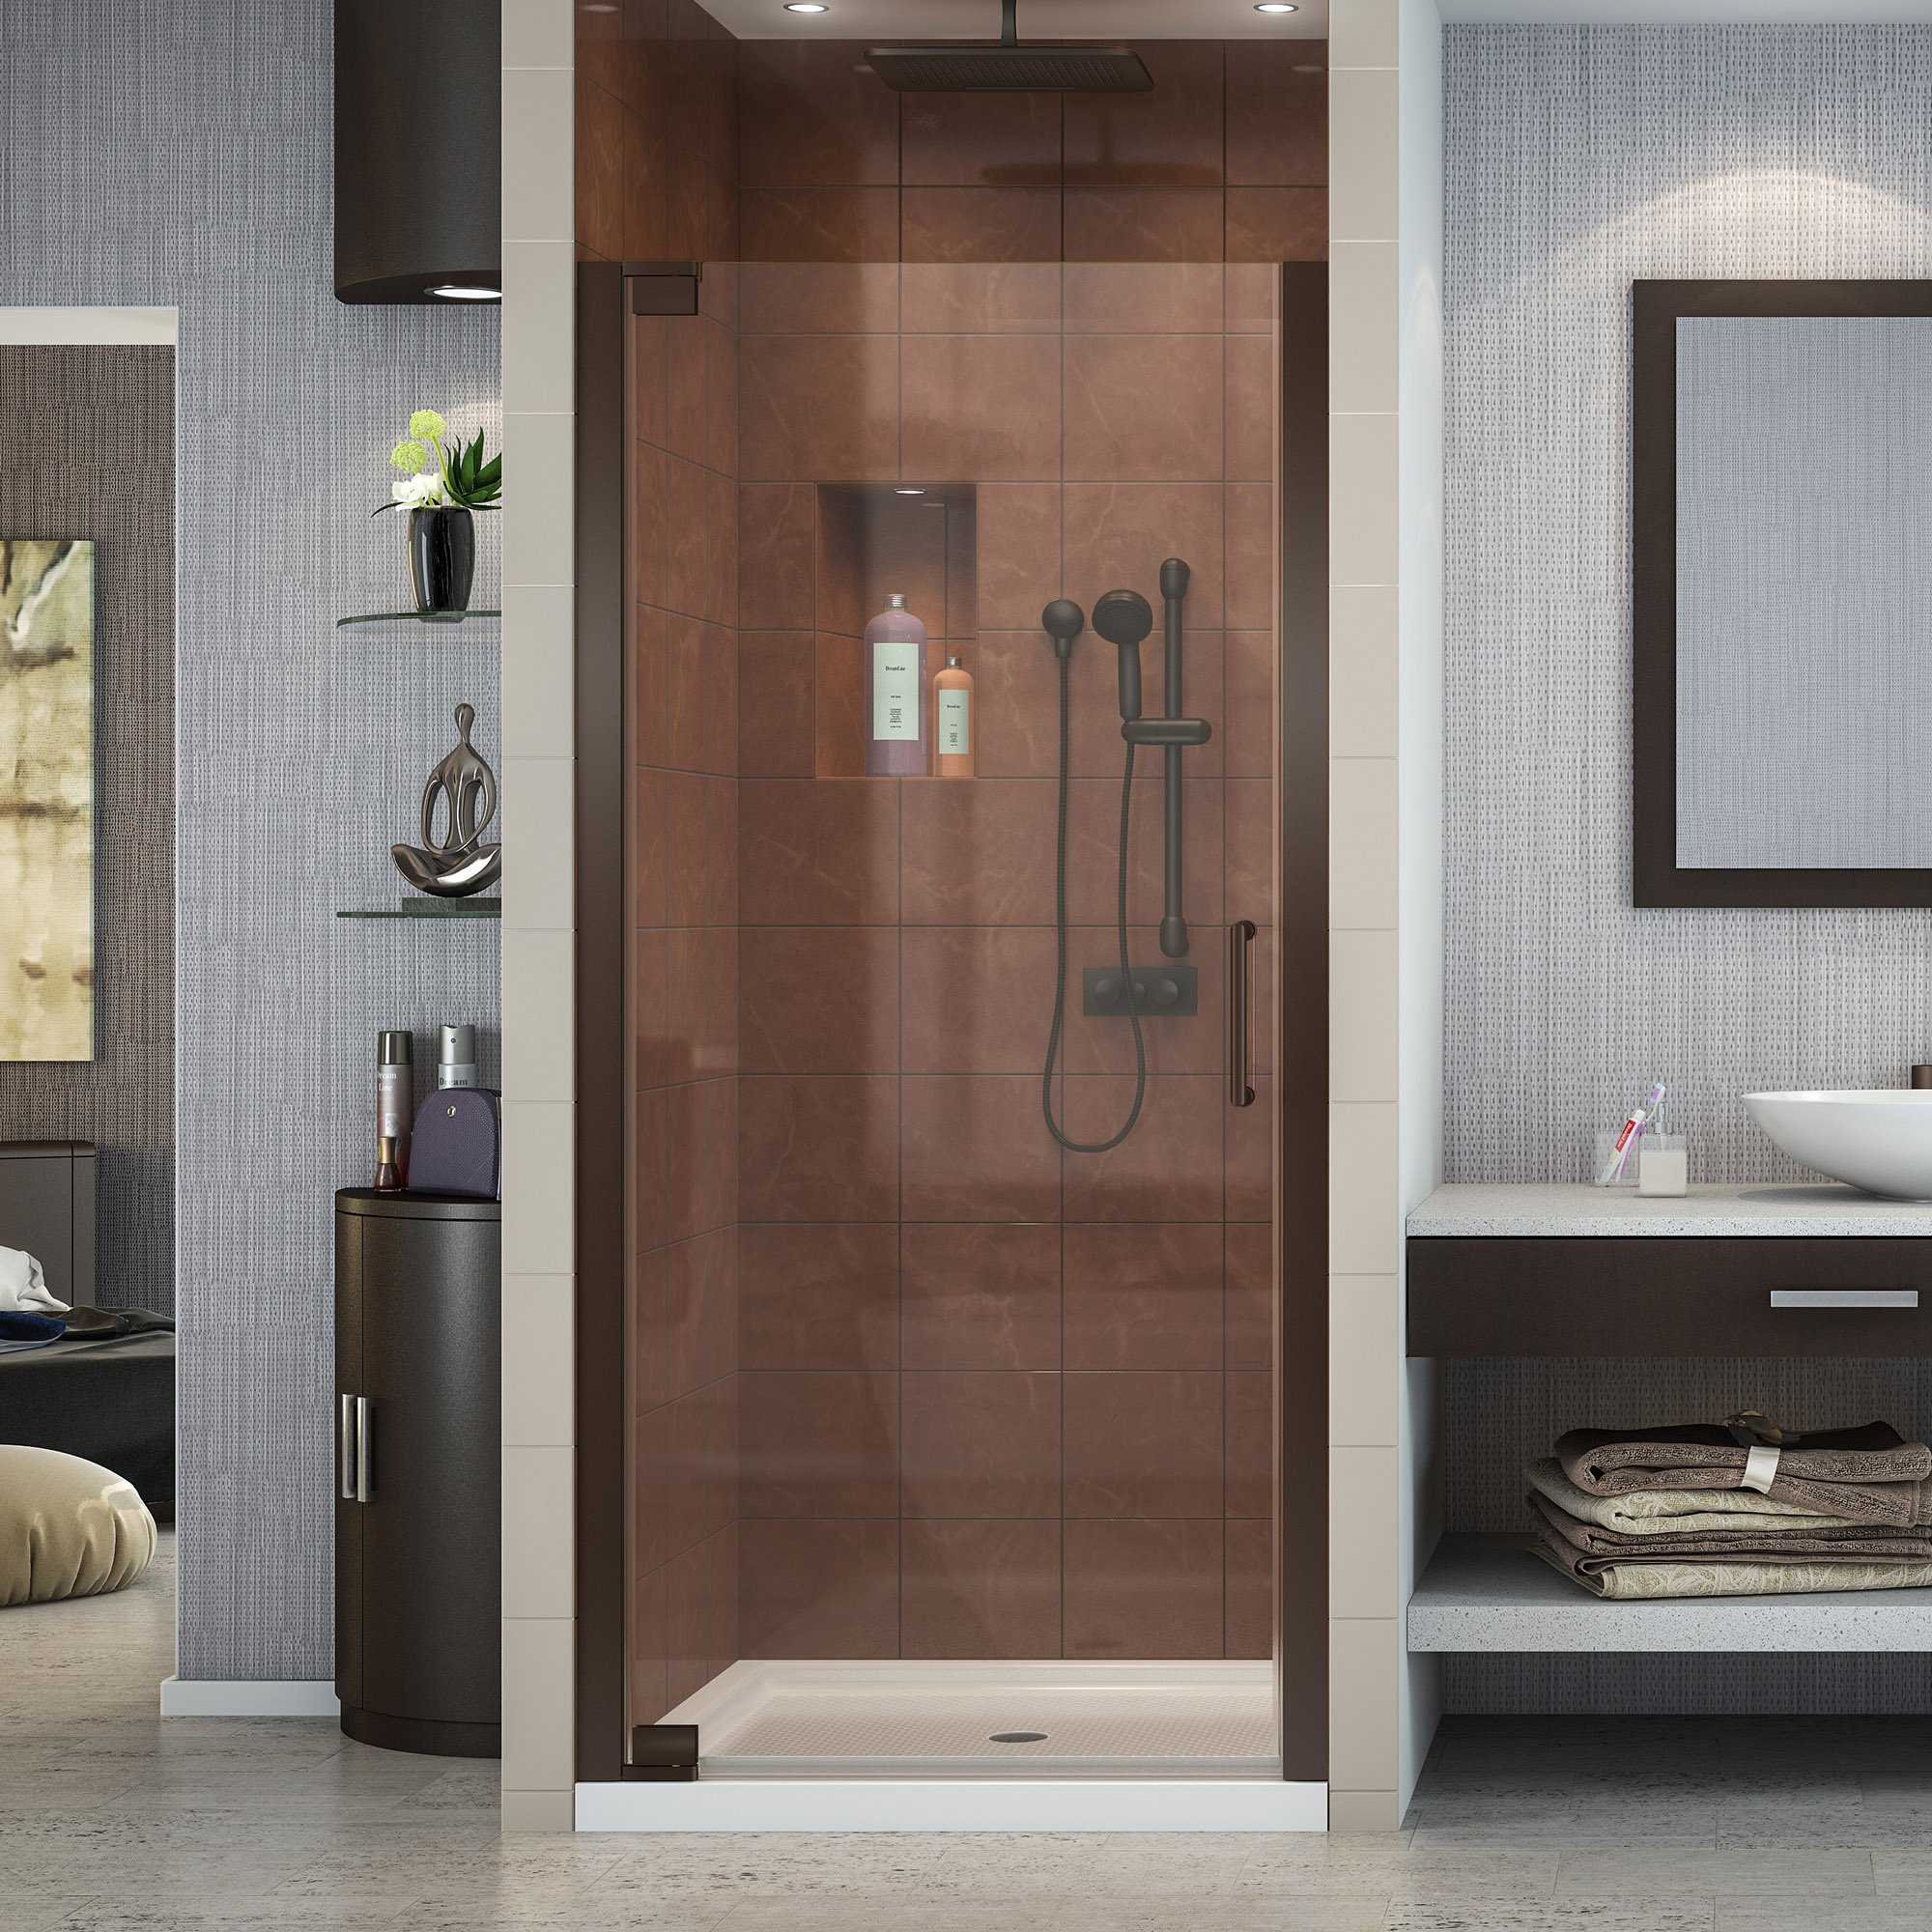 DreamLine Elegance 34-36 in. Width, Frameless Pivot Shower Door, 3/8'' Glass, Oil Rubbed Bronze Finish by DreamLine